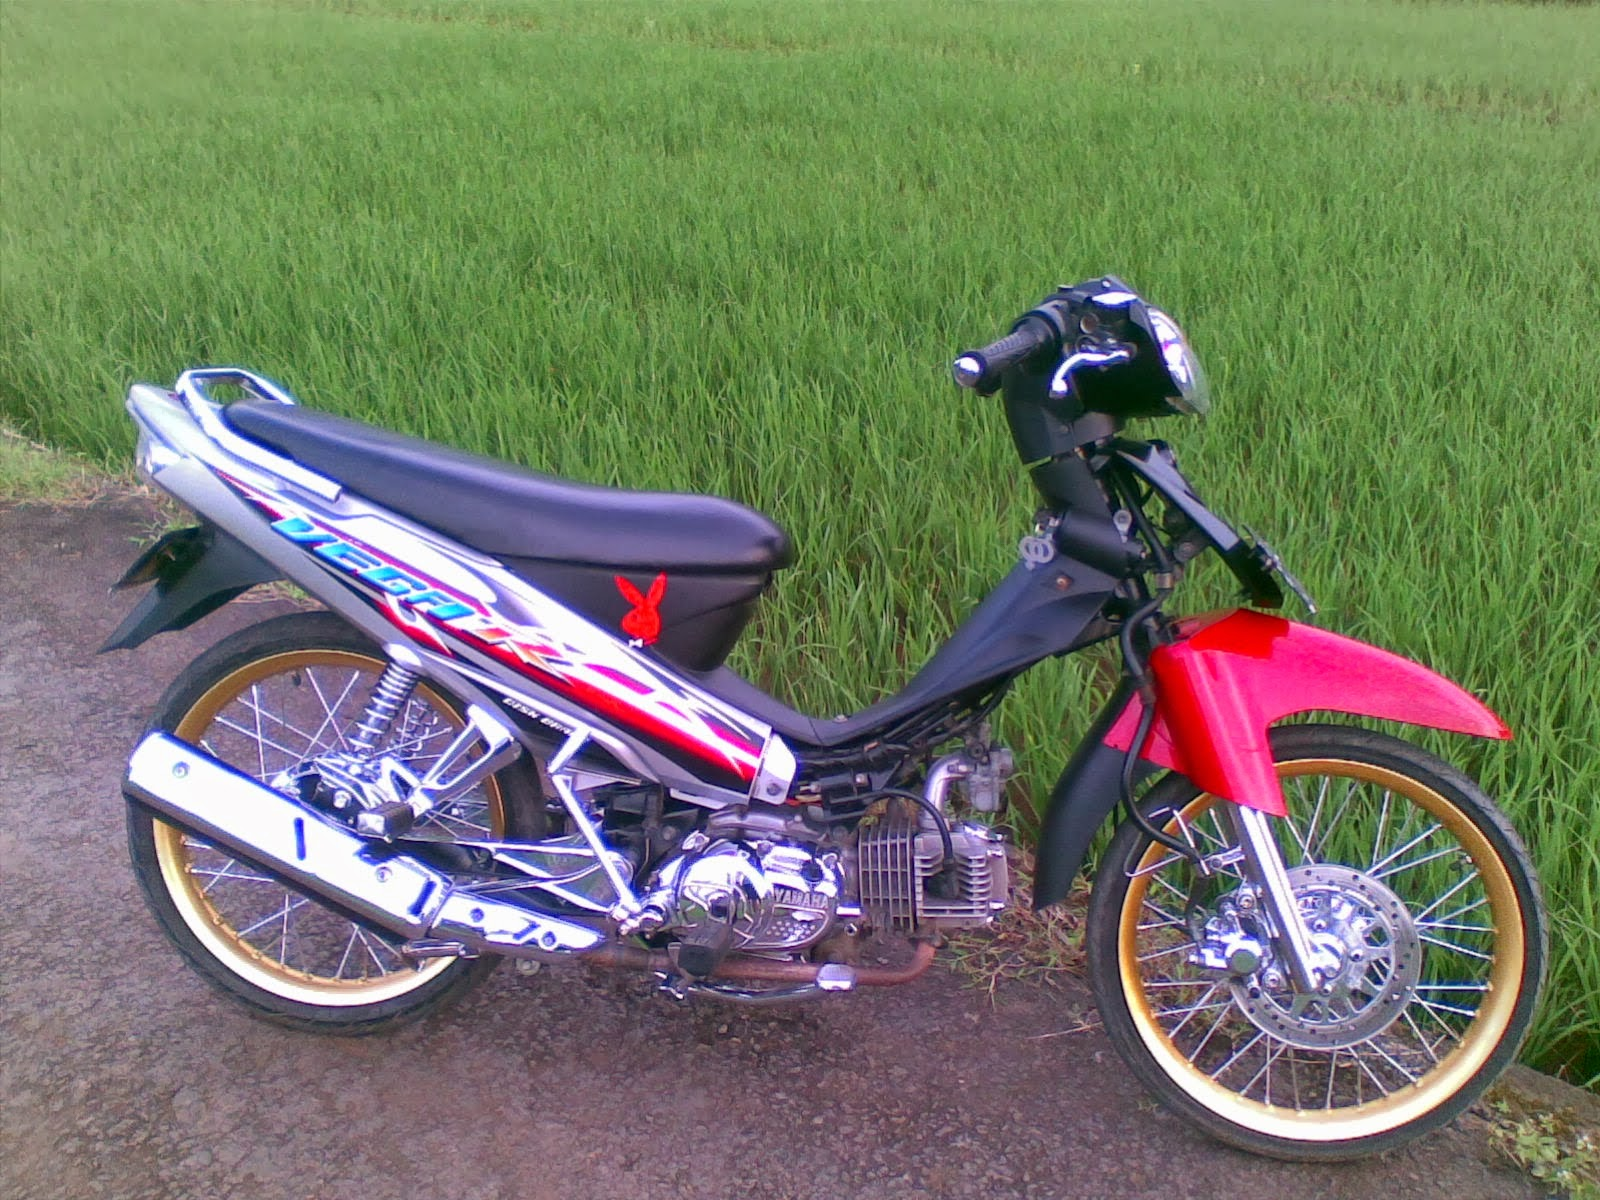 Yamaha Force 1 Zr Modifikasi